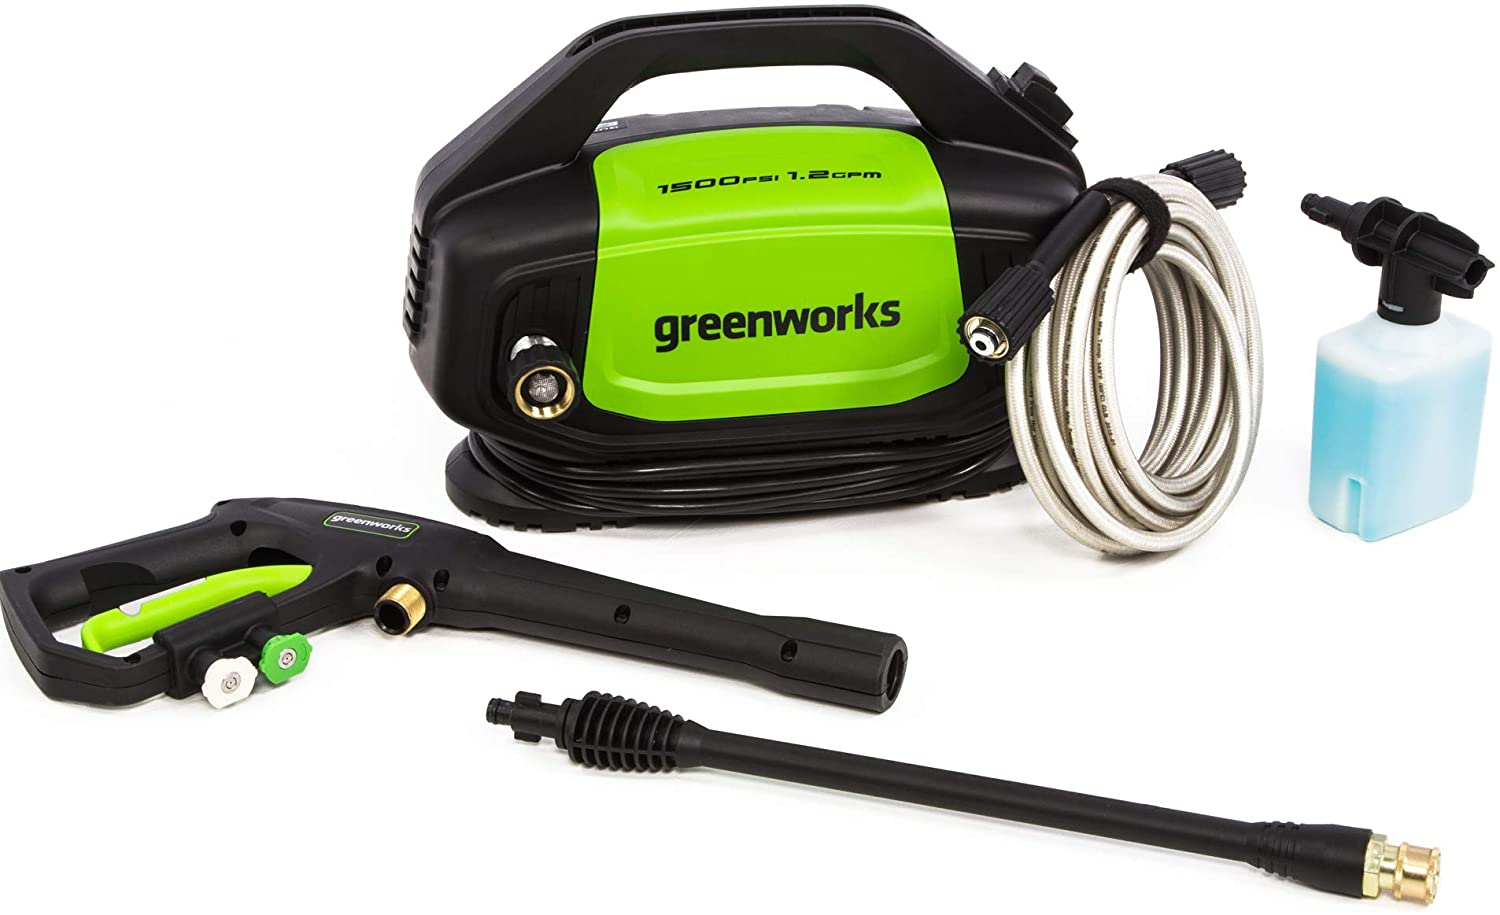 Greenworks GPW1502 1500PSI Electric Pressure Washer - Most Compact